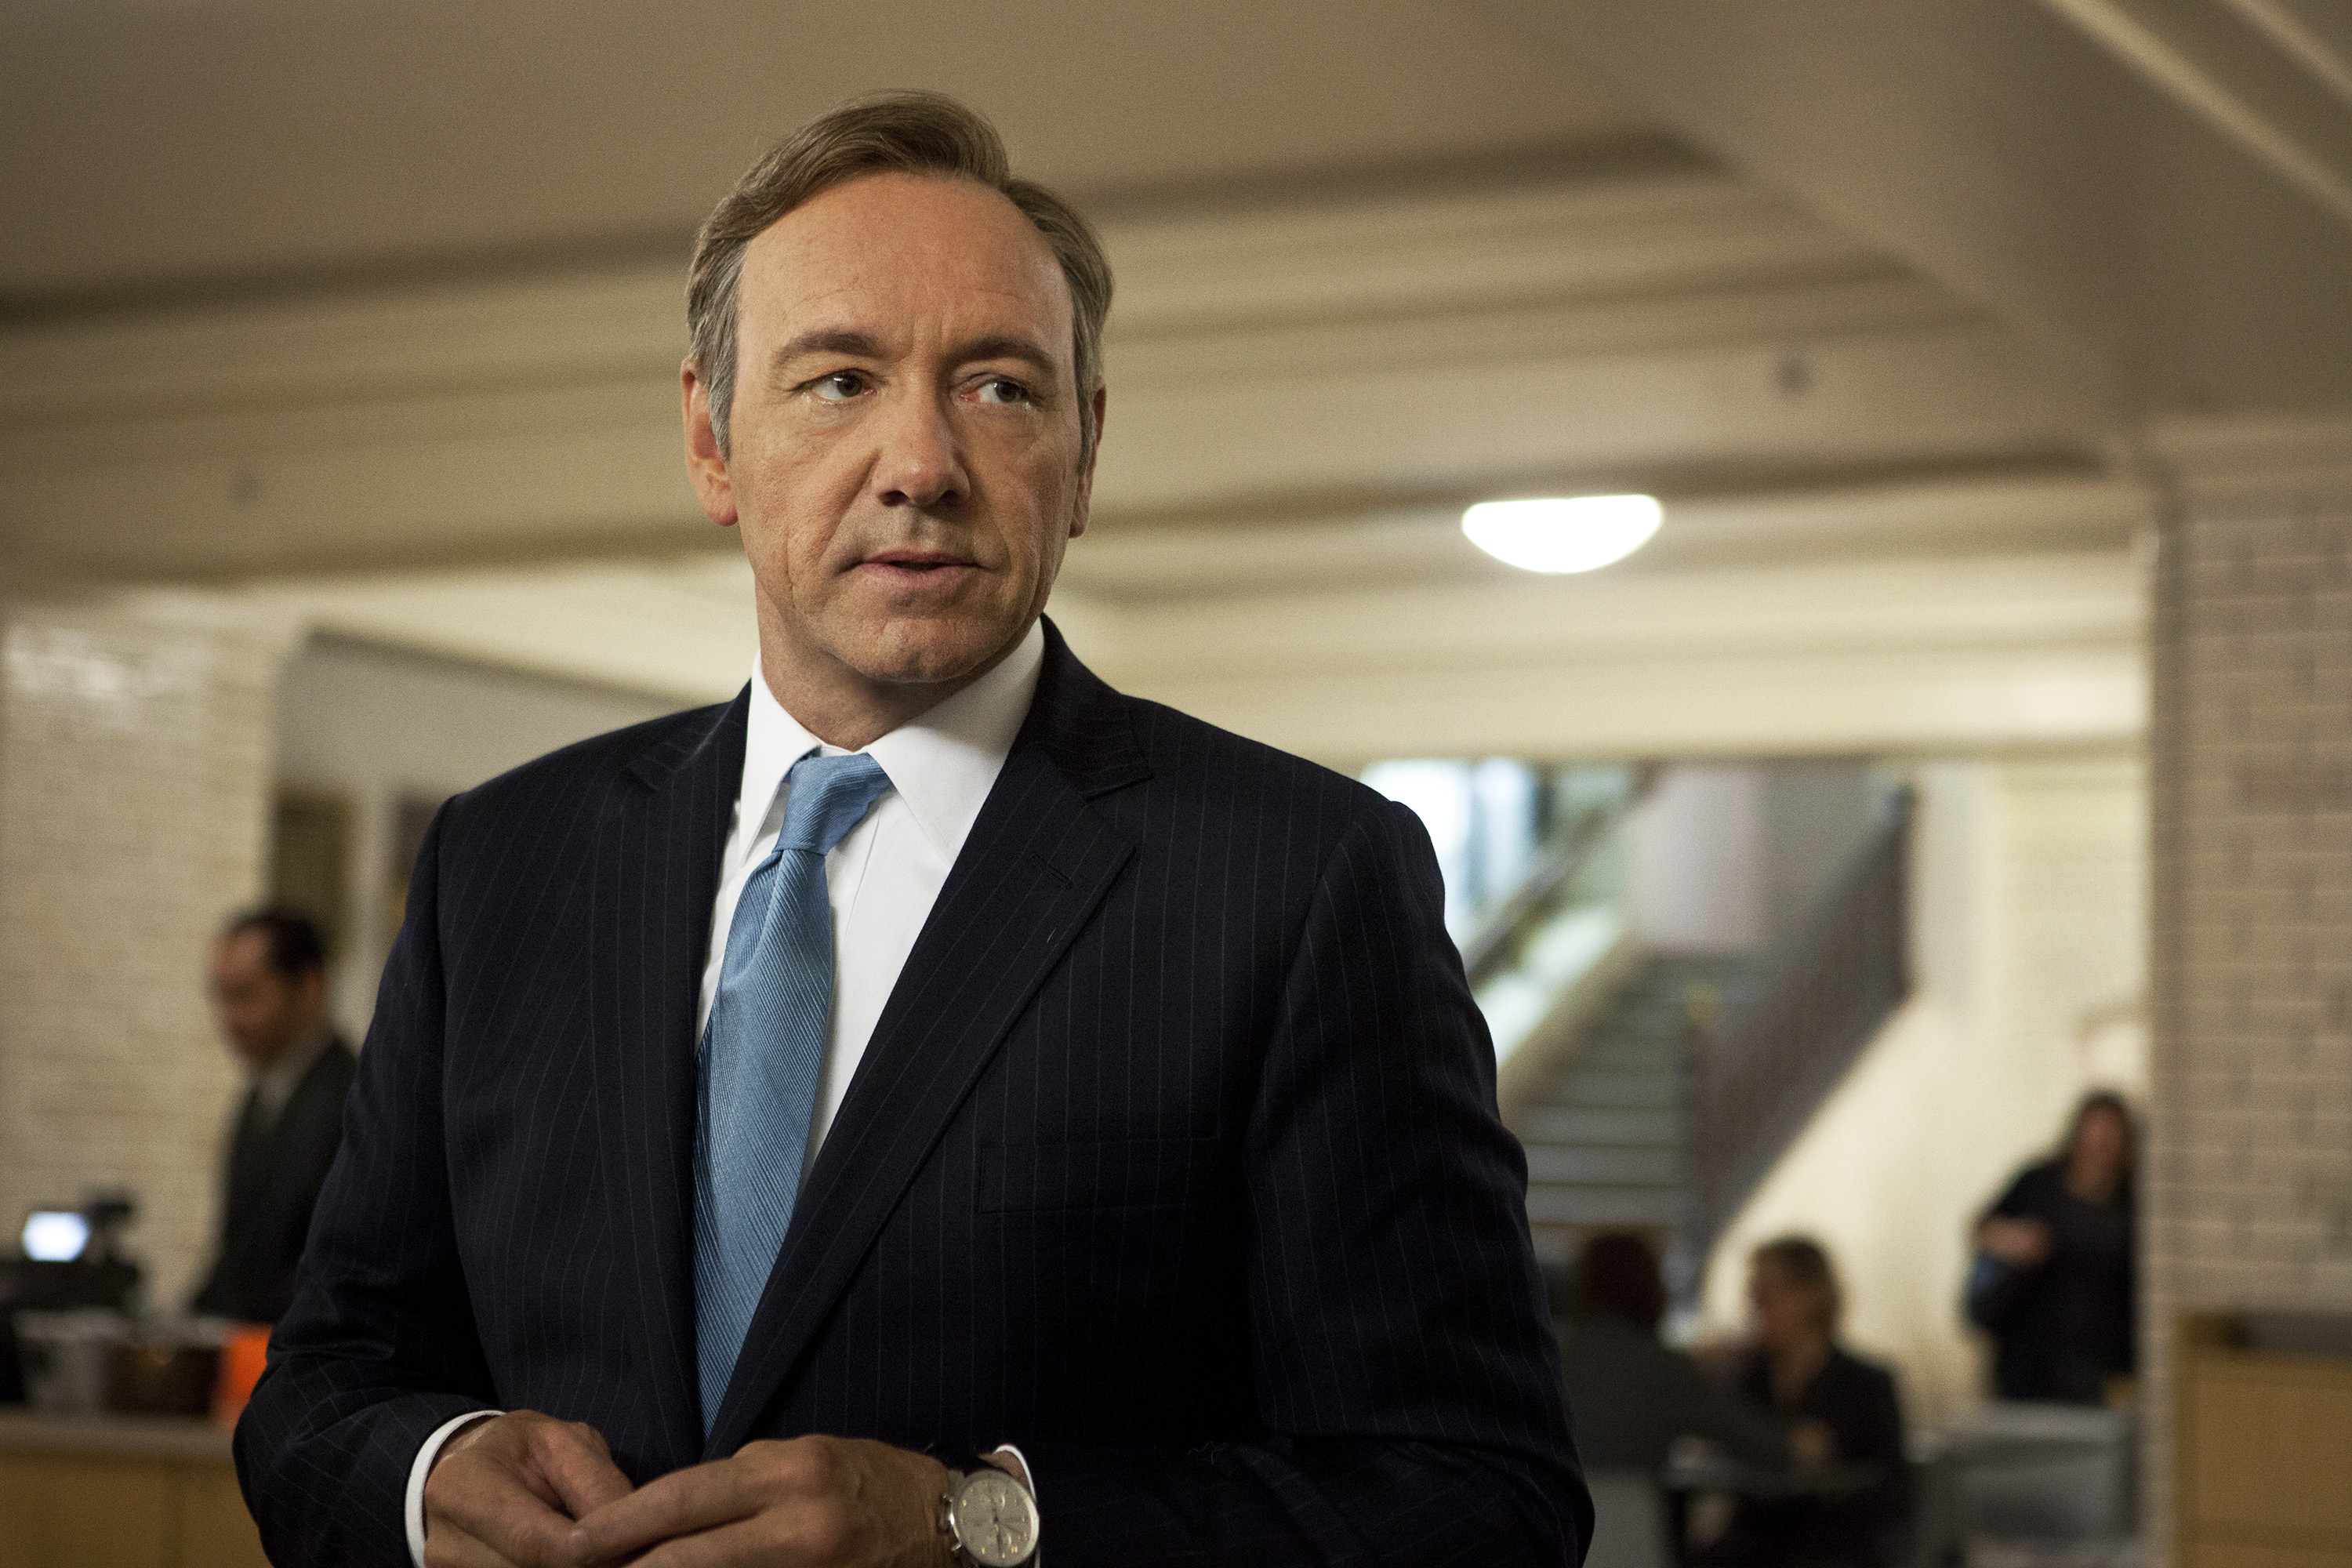 Kevin Spacey as U.S. Congressman Frank Underwood in a scene from the first season of the Netflix original series,  House of Cards.